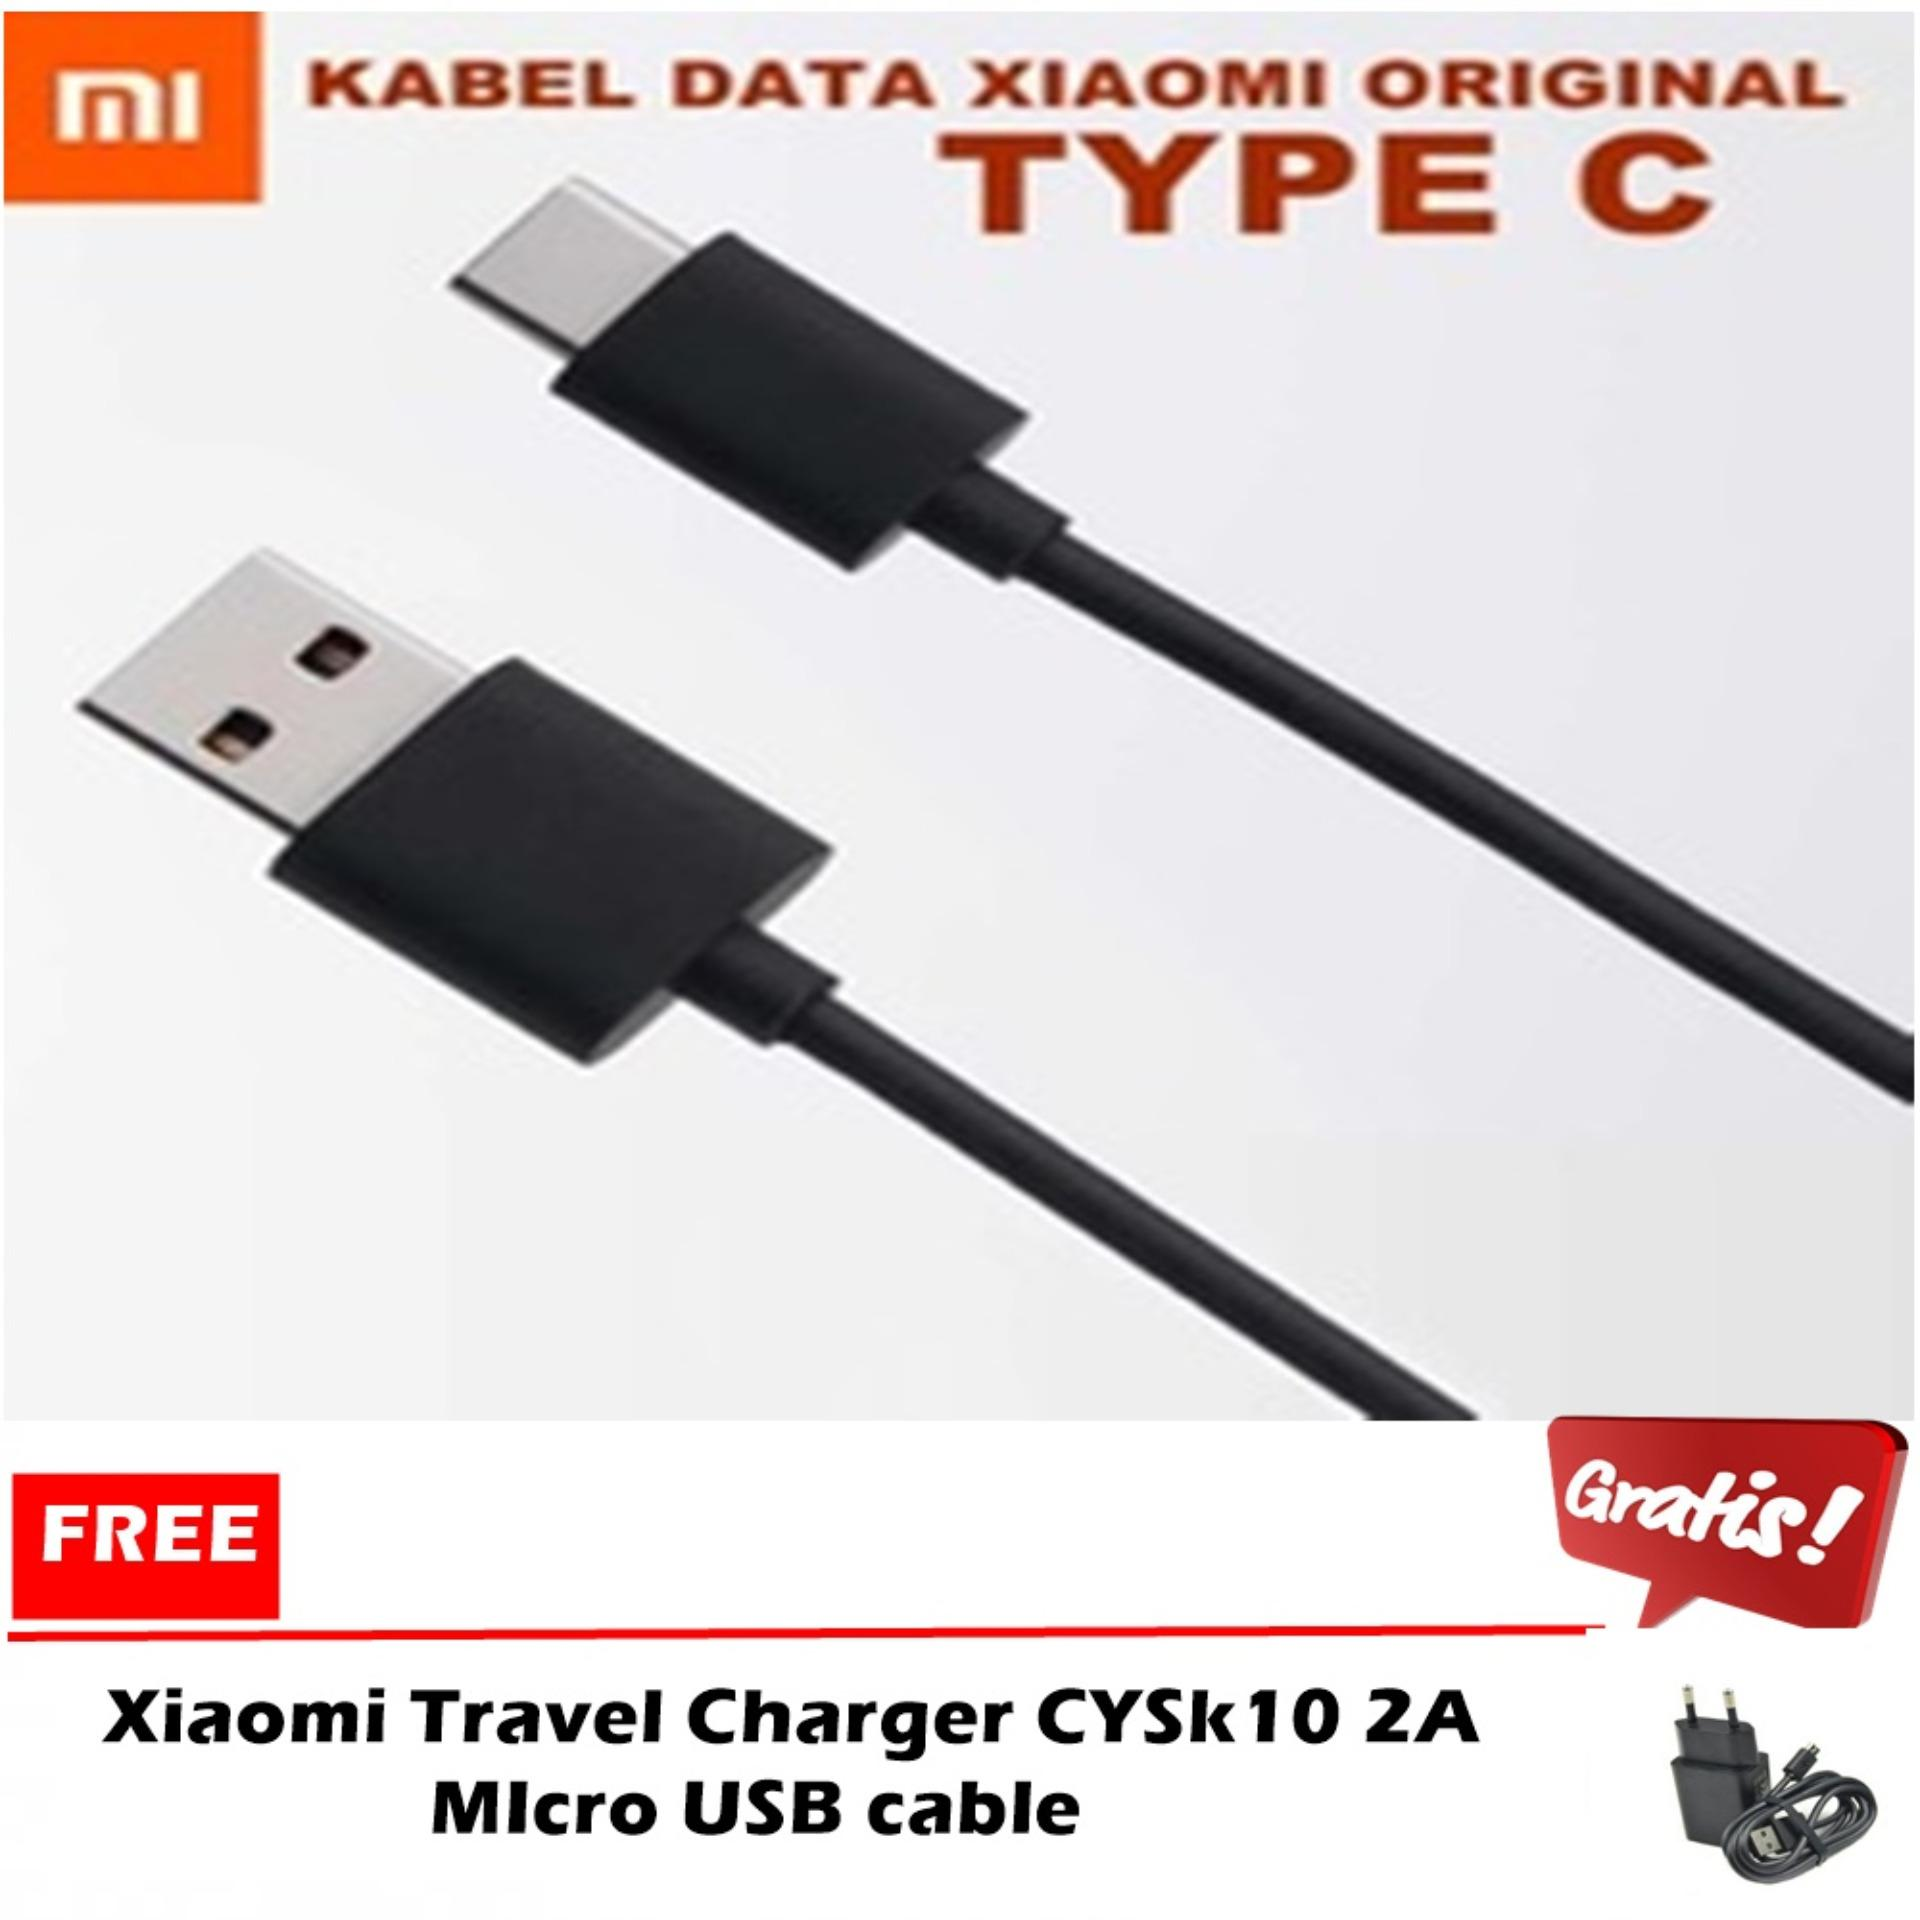 Jbs Xiaomi Original Micro Usb And Data Sync Cable Charger 2a Kabel Xiomi Type C Microusb Fast Hitam Black Source